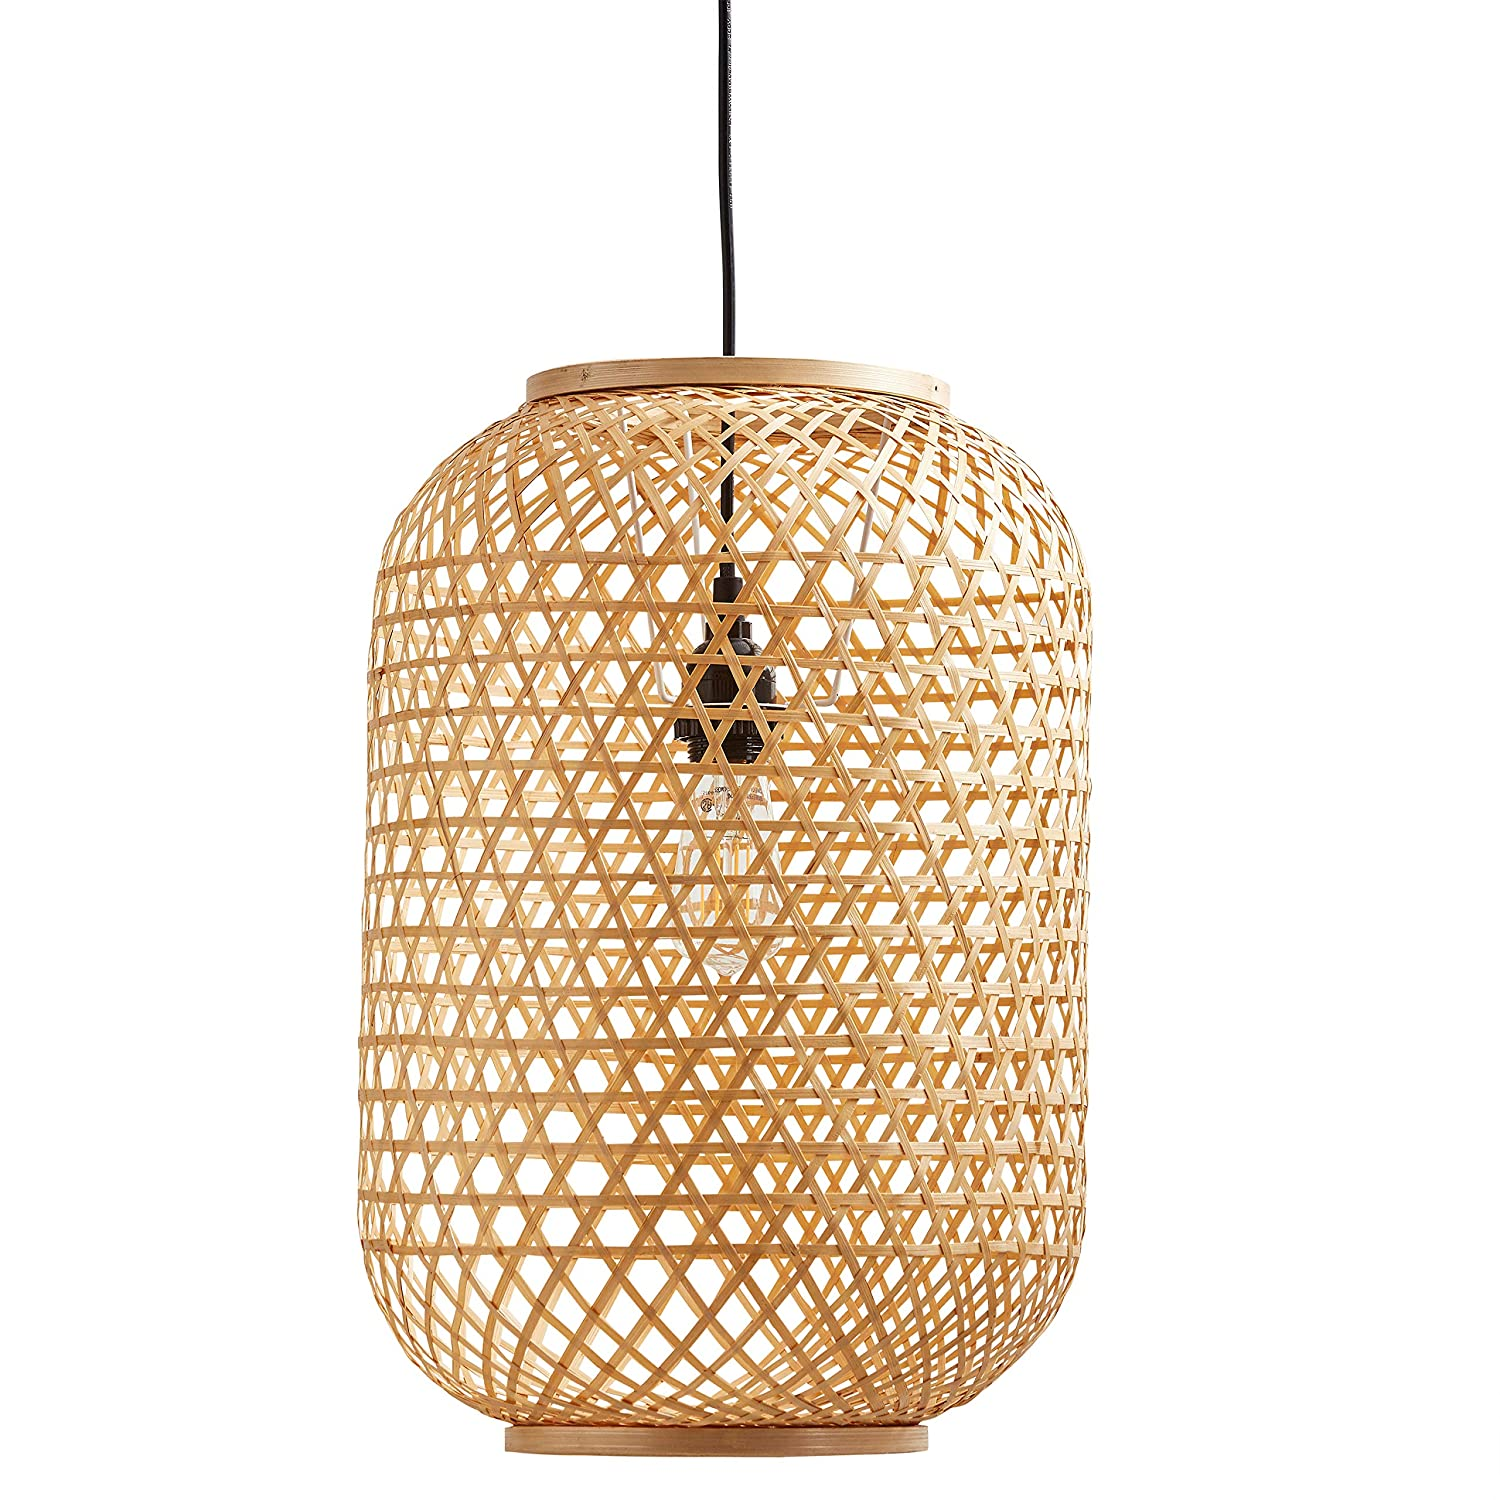 huge selection of 43ff4 14306 Stone & Beam Modern Barrel Woven Ceiling Pendant Chandelier Fixture with  Light Bulb - 10 x 10 x 16.25 Inches, 43.5 Inch Cord, Natural Rattan Shade